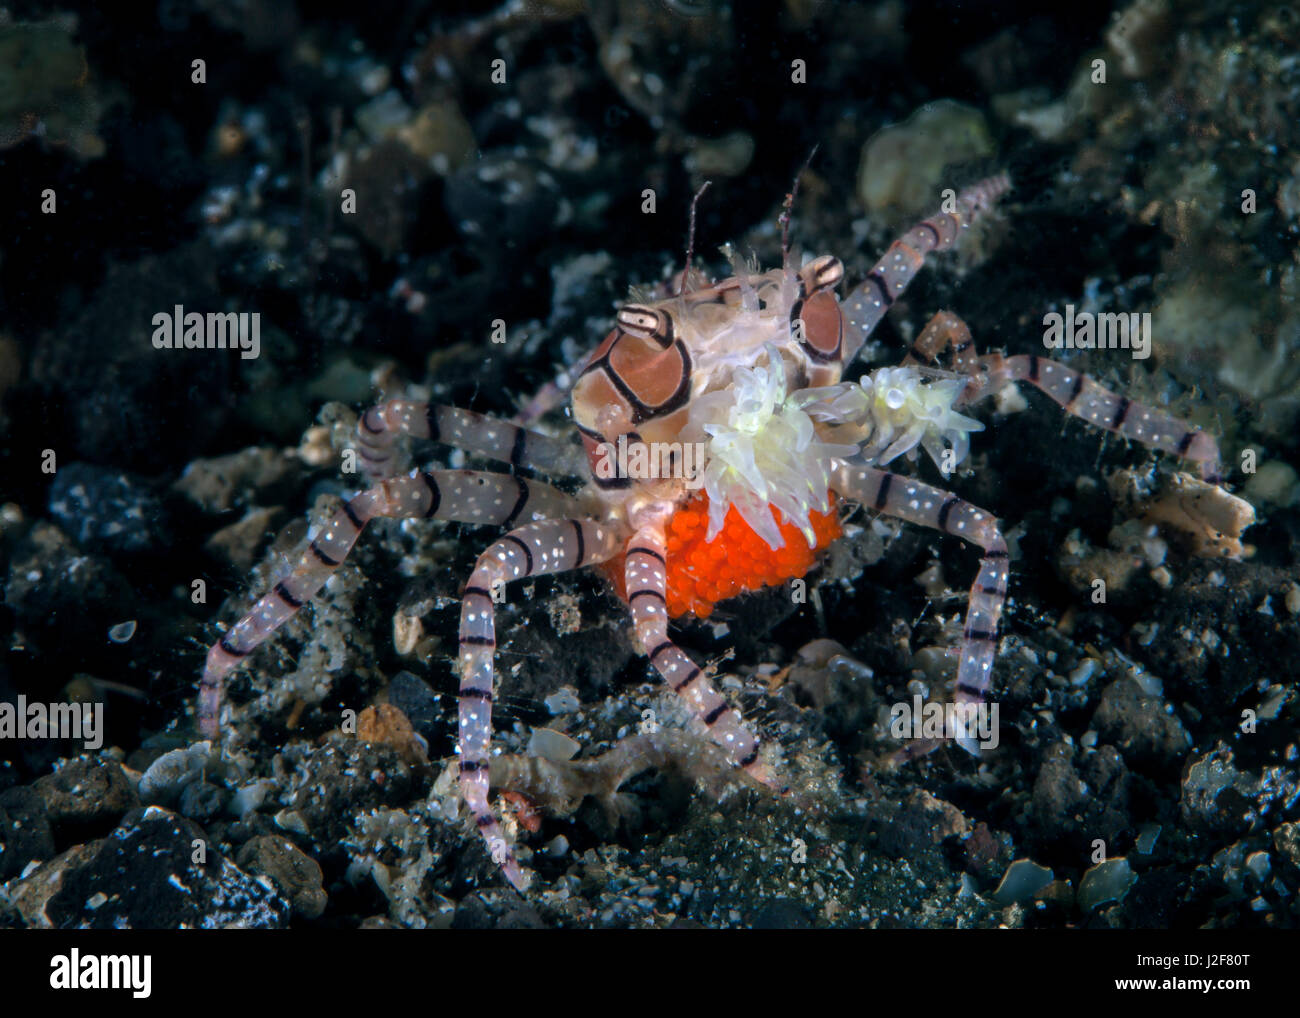 Boxer crab carrying a bright orange egg sack brandishes claws weaponized with stinging anemones. Ambon Bay, Indonesia. - Stock Image